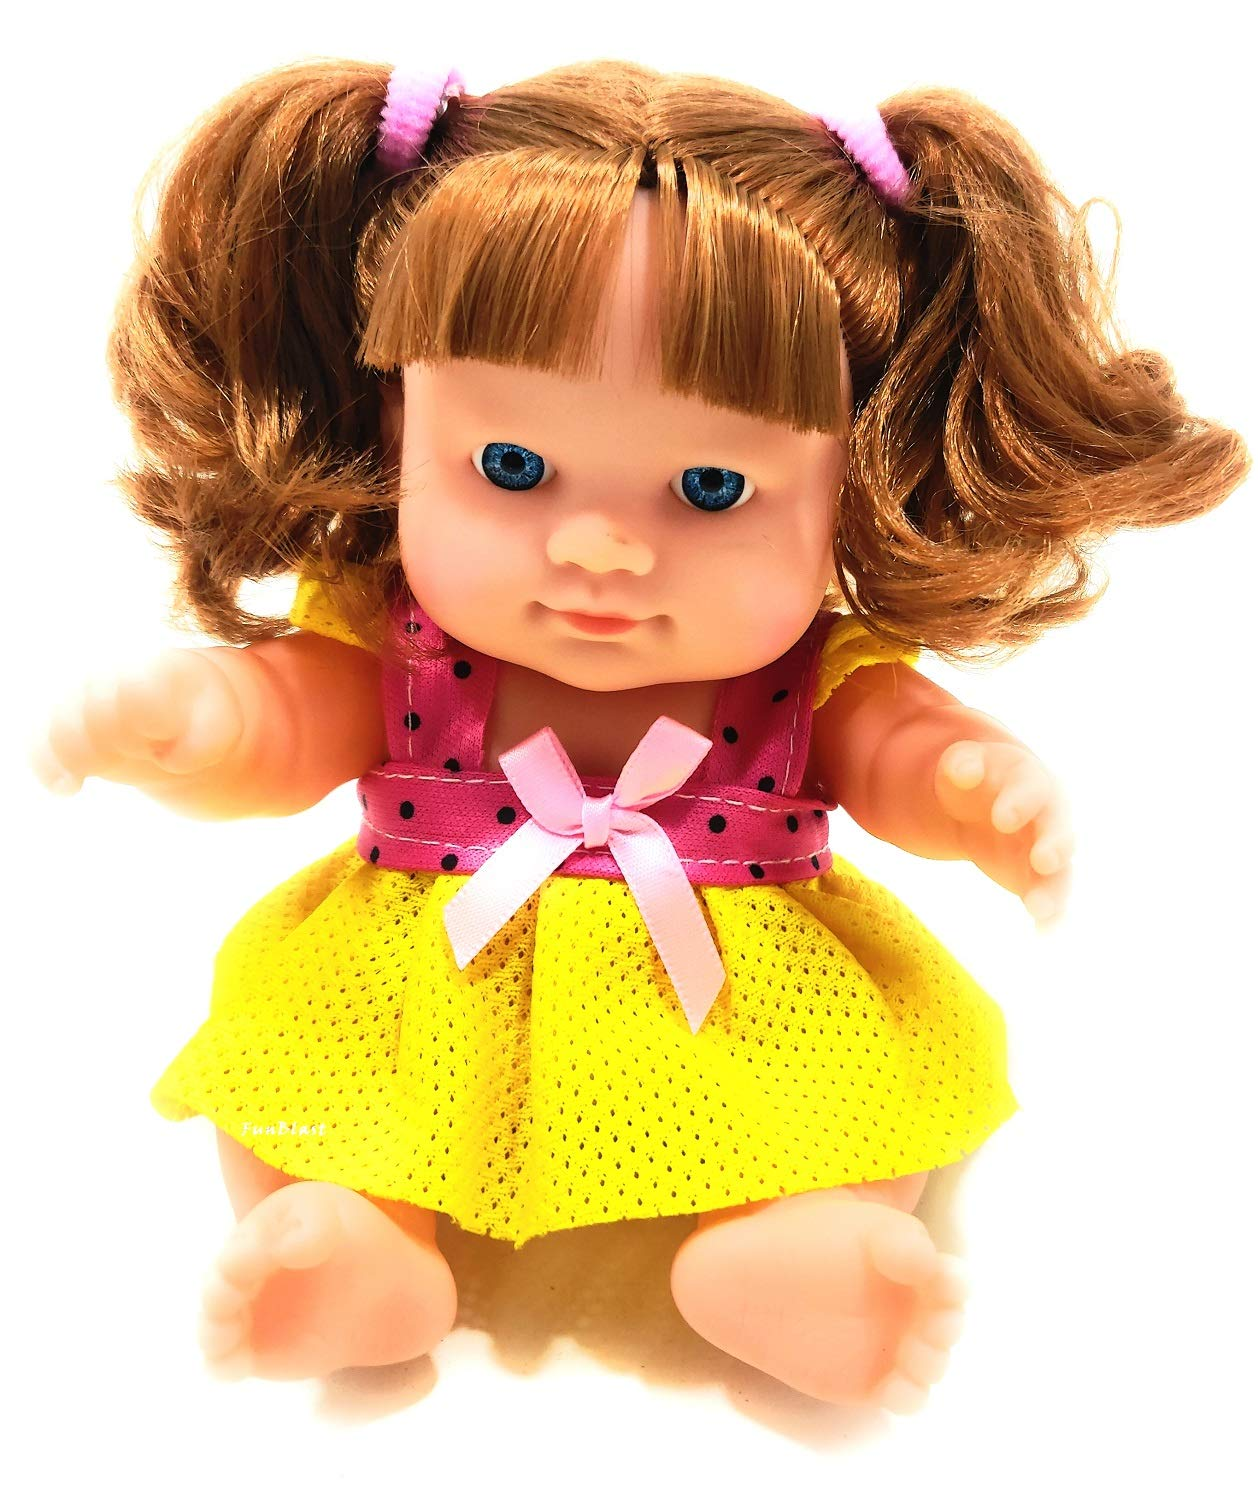 Buy FunBlast Beautiful Doll Set for Kids, Baby Dolls for Girls ...